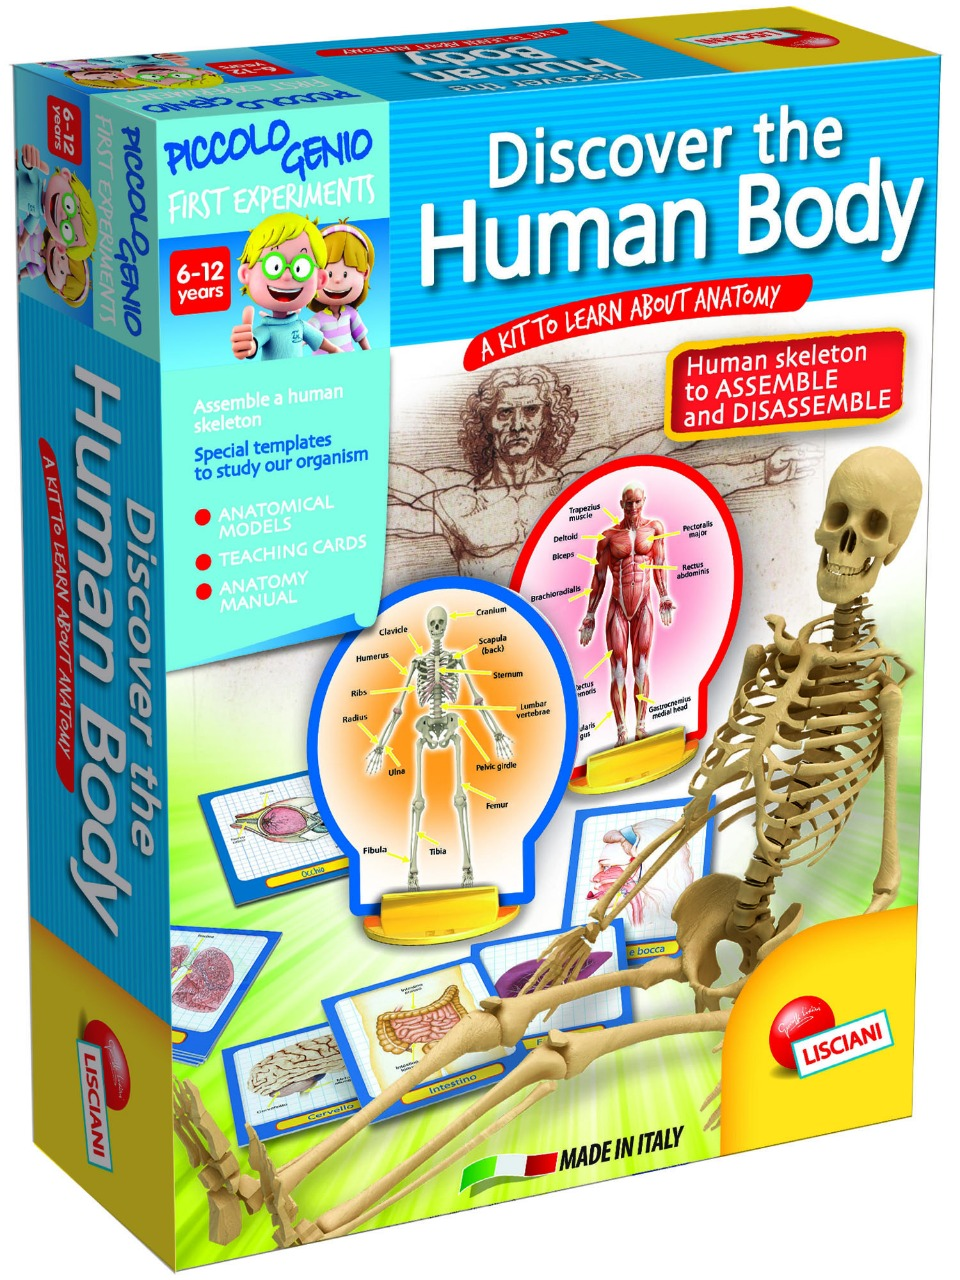 LISCIANI – DISCOVER THE HUMAN BODY- SCIENCE TOY